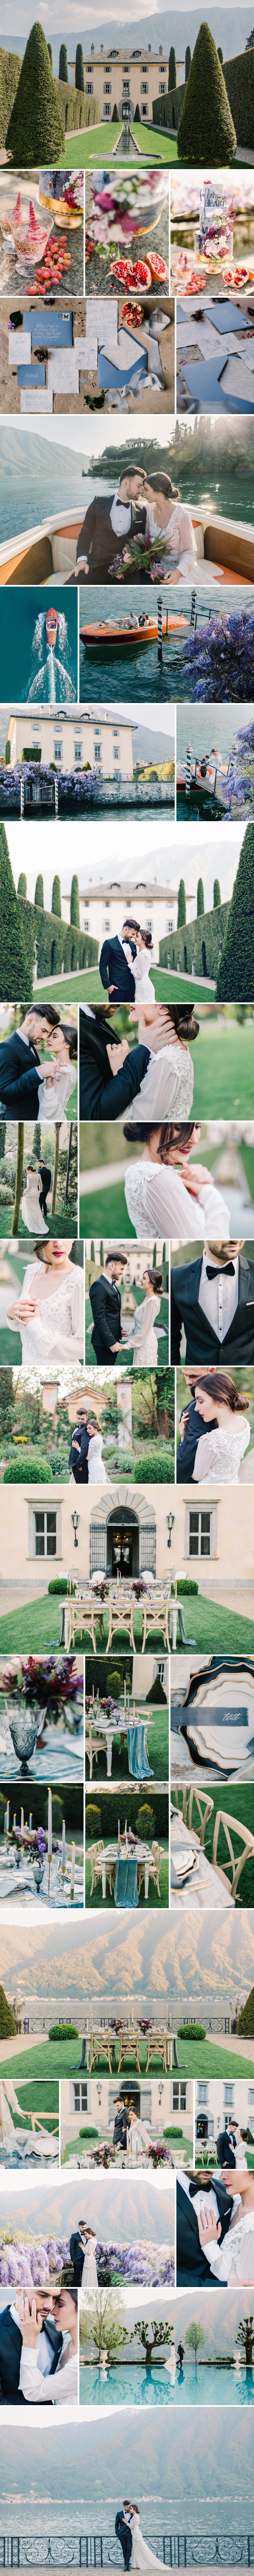 wedding villa balbiano photographer